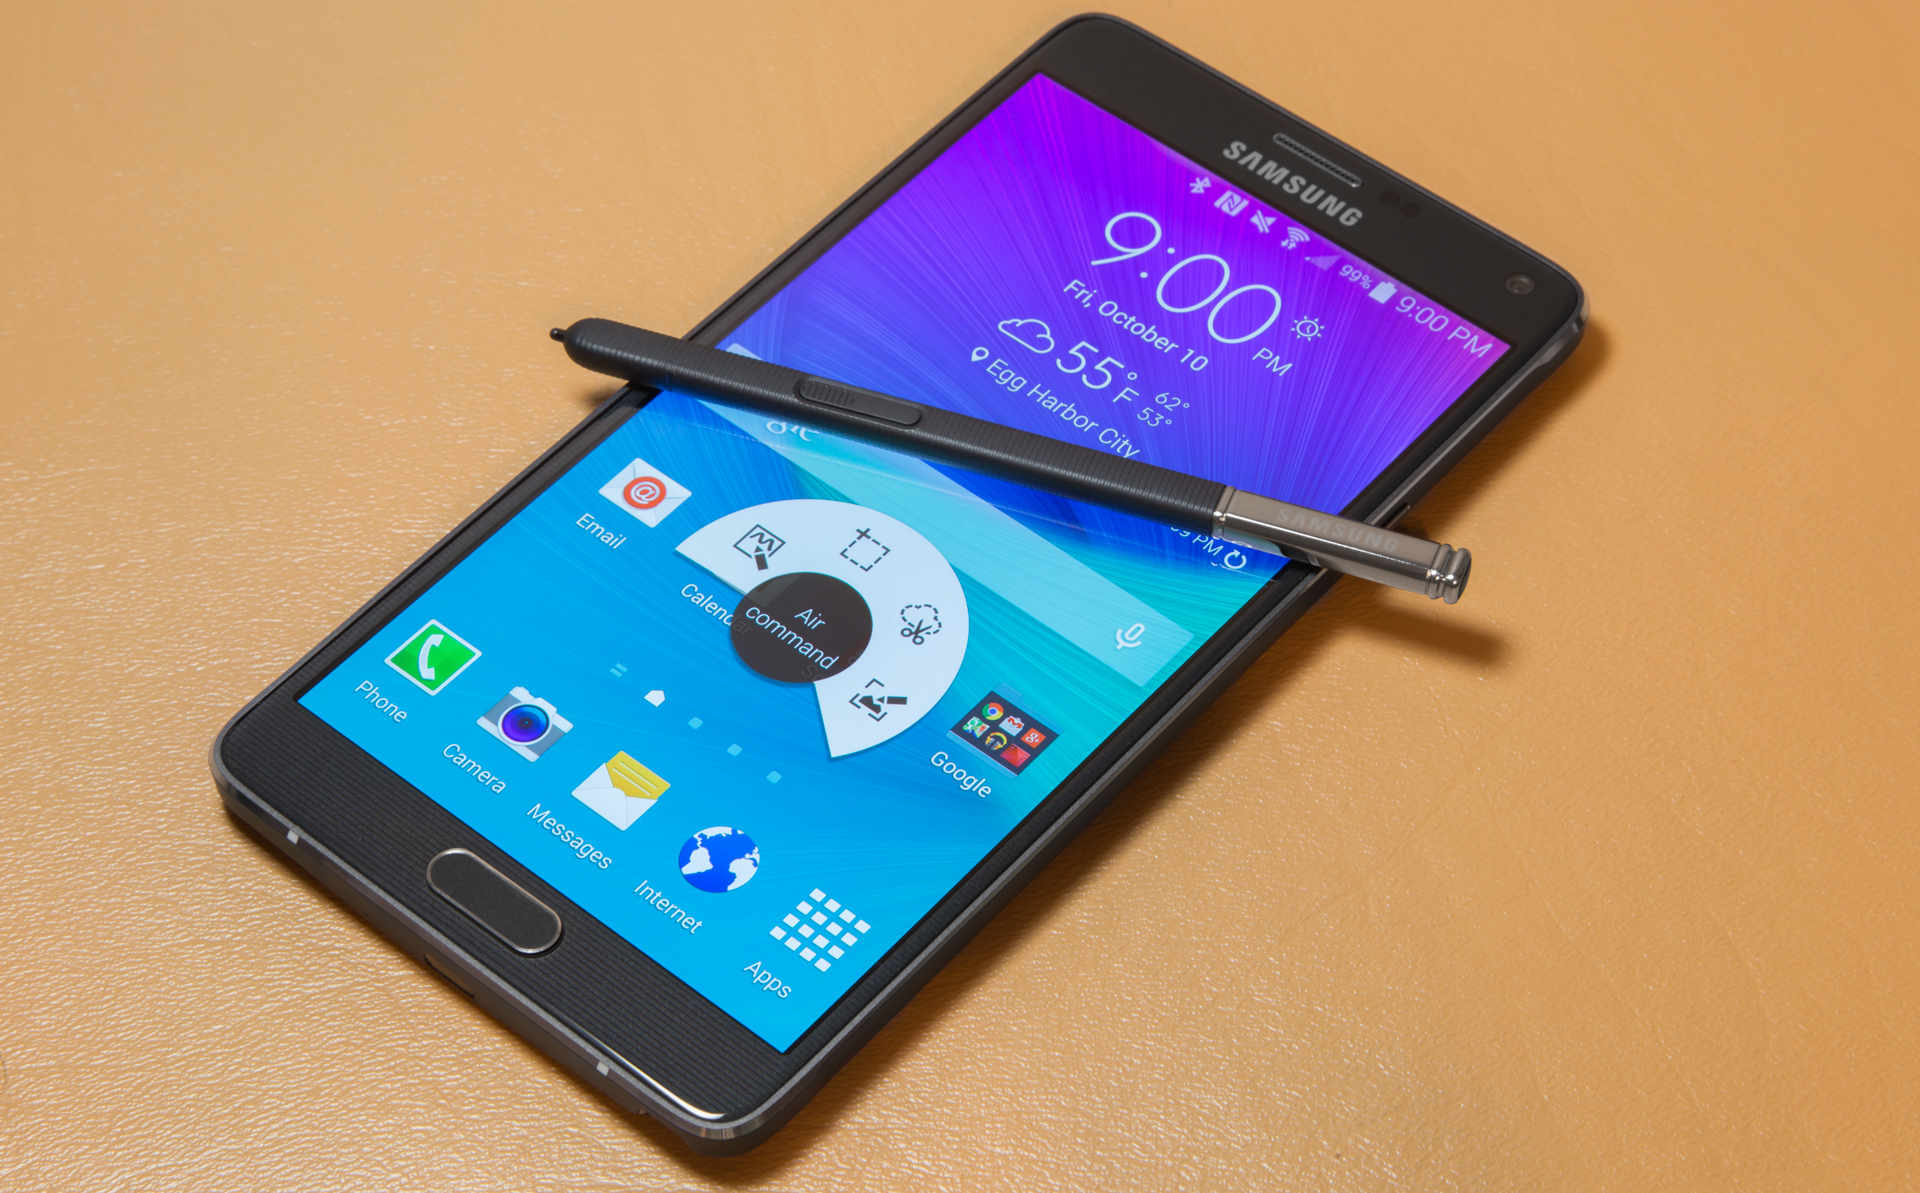 Top 10 Samsung Galaxy Note 4 Apps Of 2014